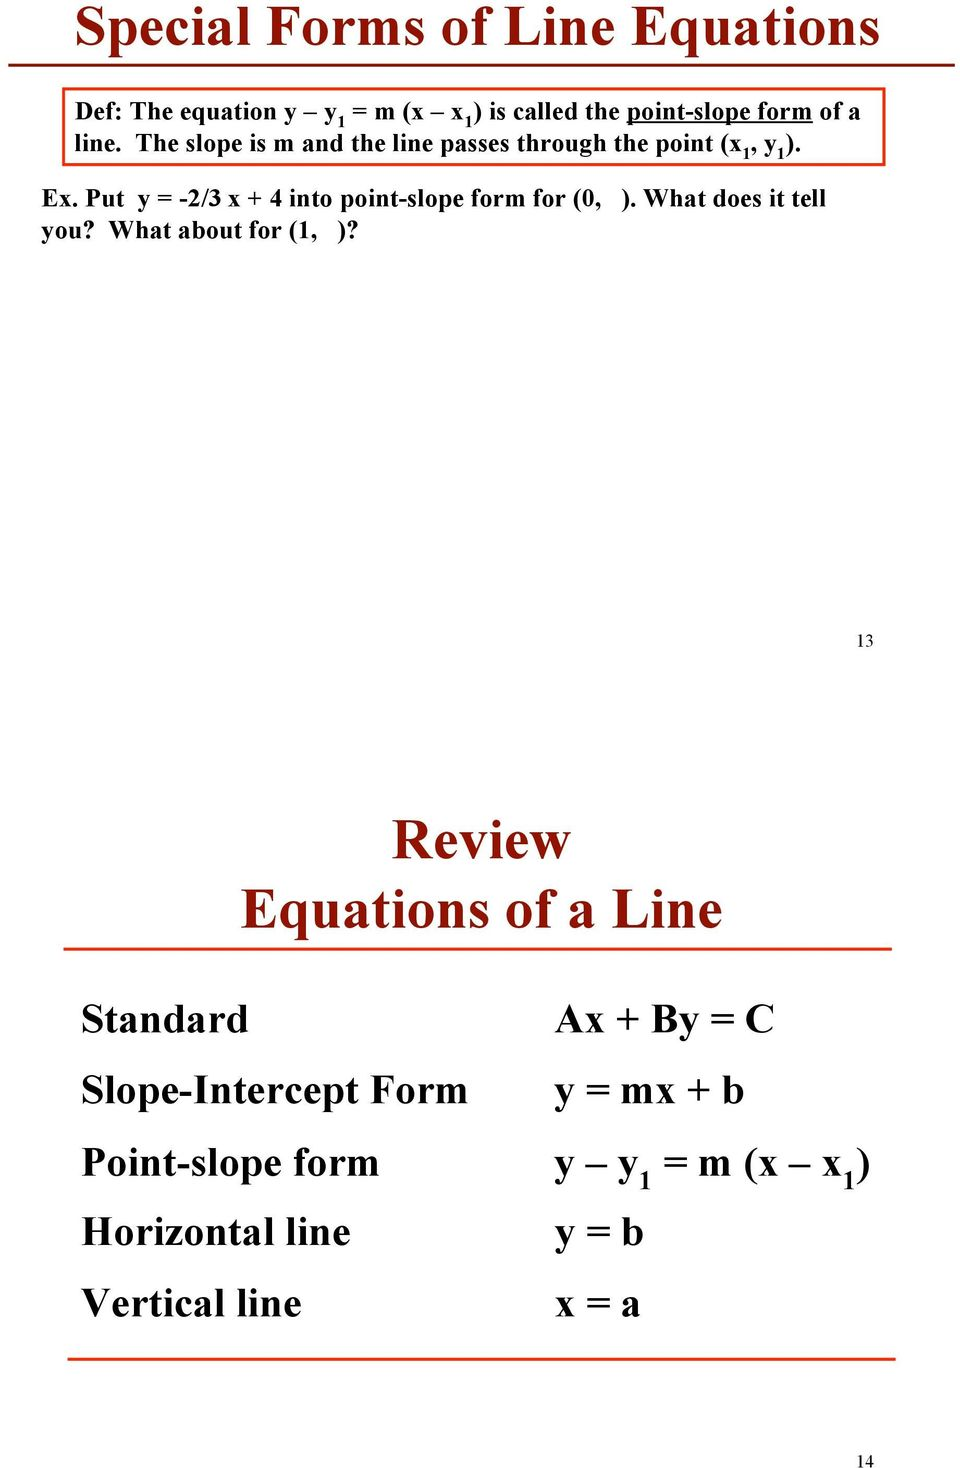 Warm Up Exercse 1 3 Linear Functions Straight Lines Pdf